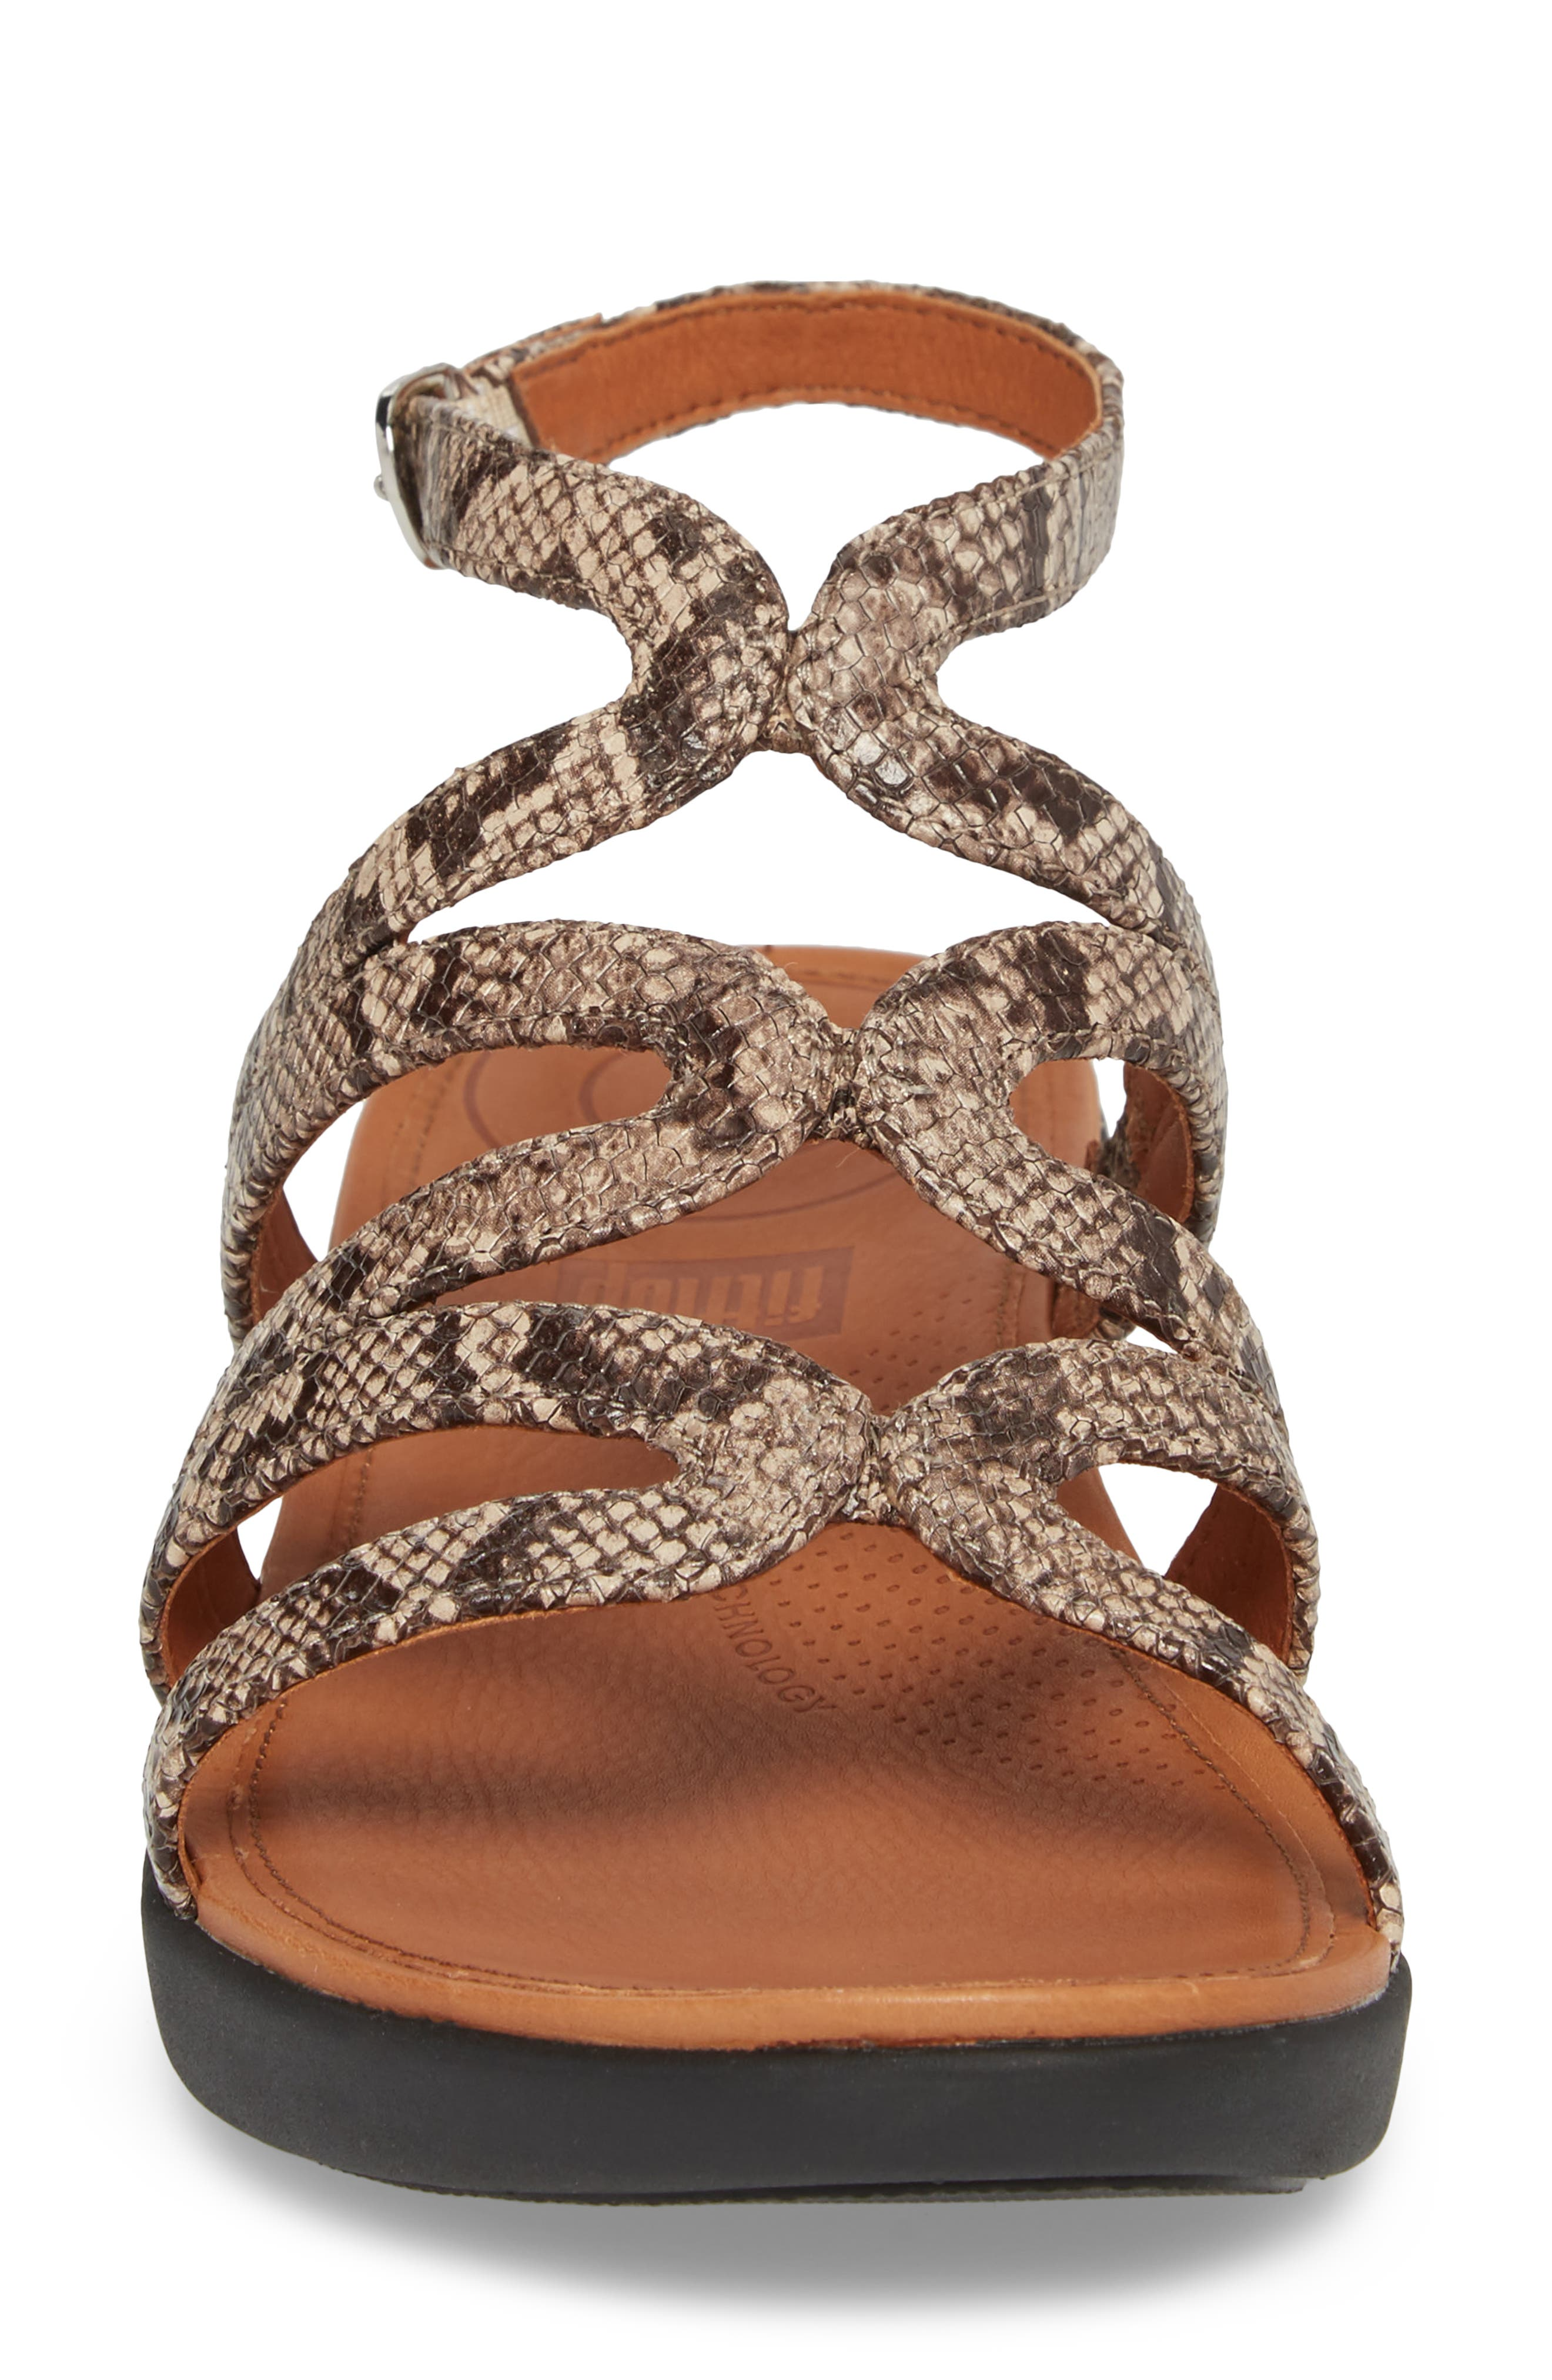 Strata Gladiator Sandal,                             Alternate thumbnail 8, color,